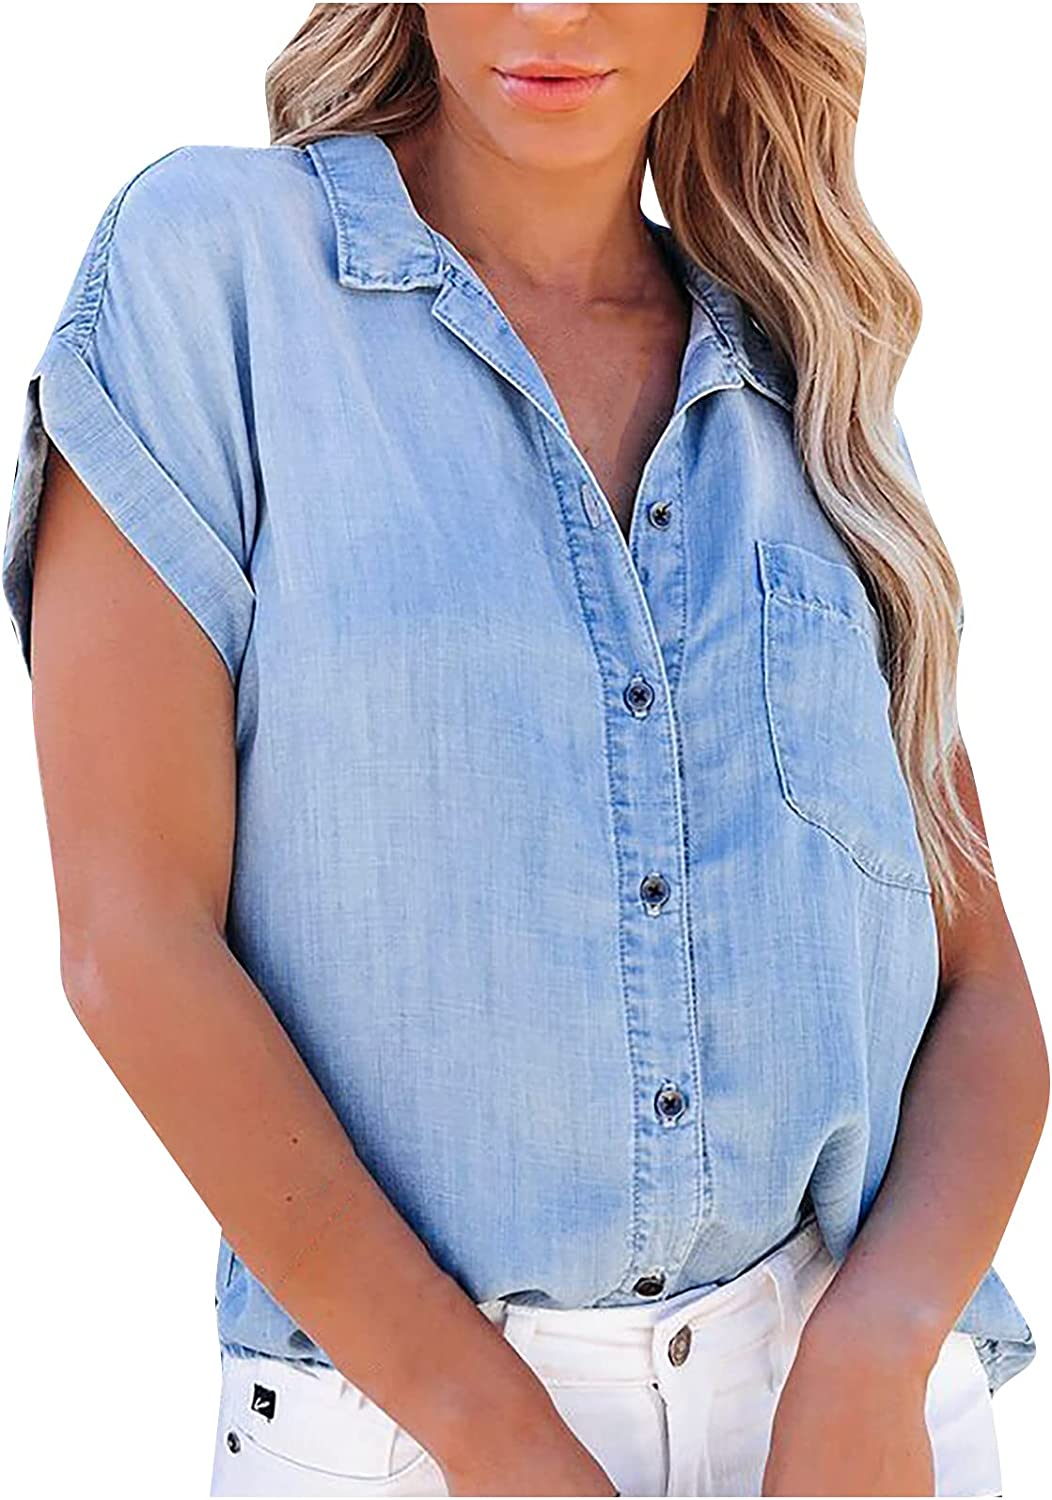 Women's Summer Short Sleeve Denim Shirt Plus Size Loose Button Down Faux Jeans Blouses Lapel V Neck Casual Tops with Pockets